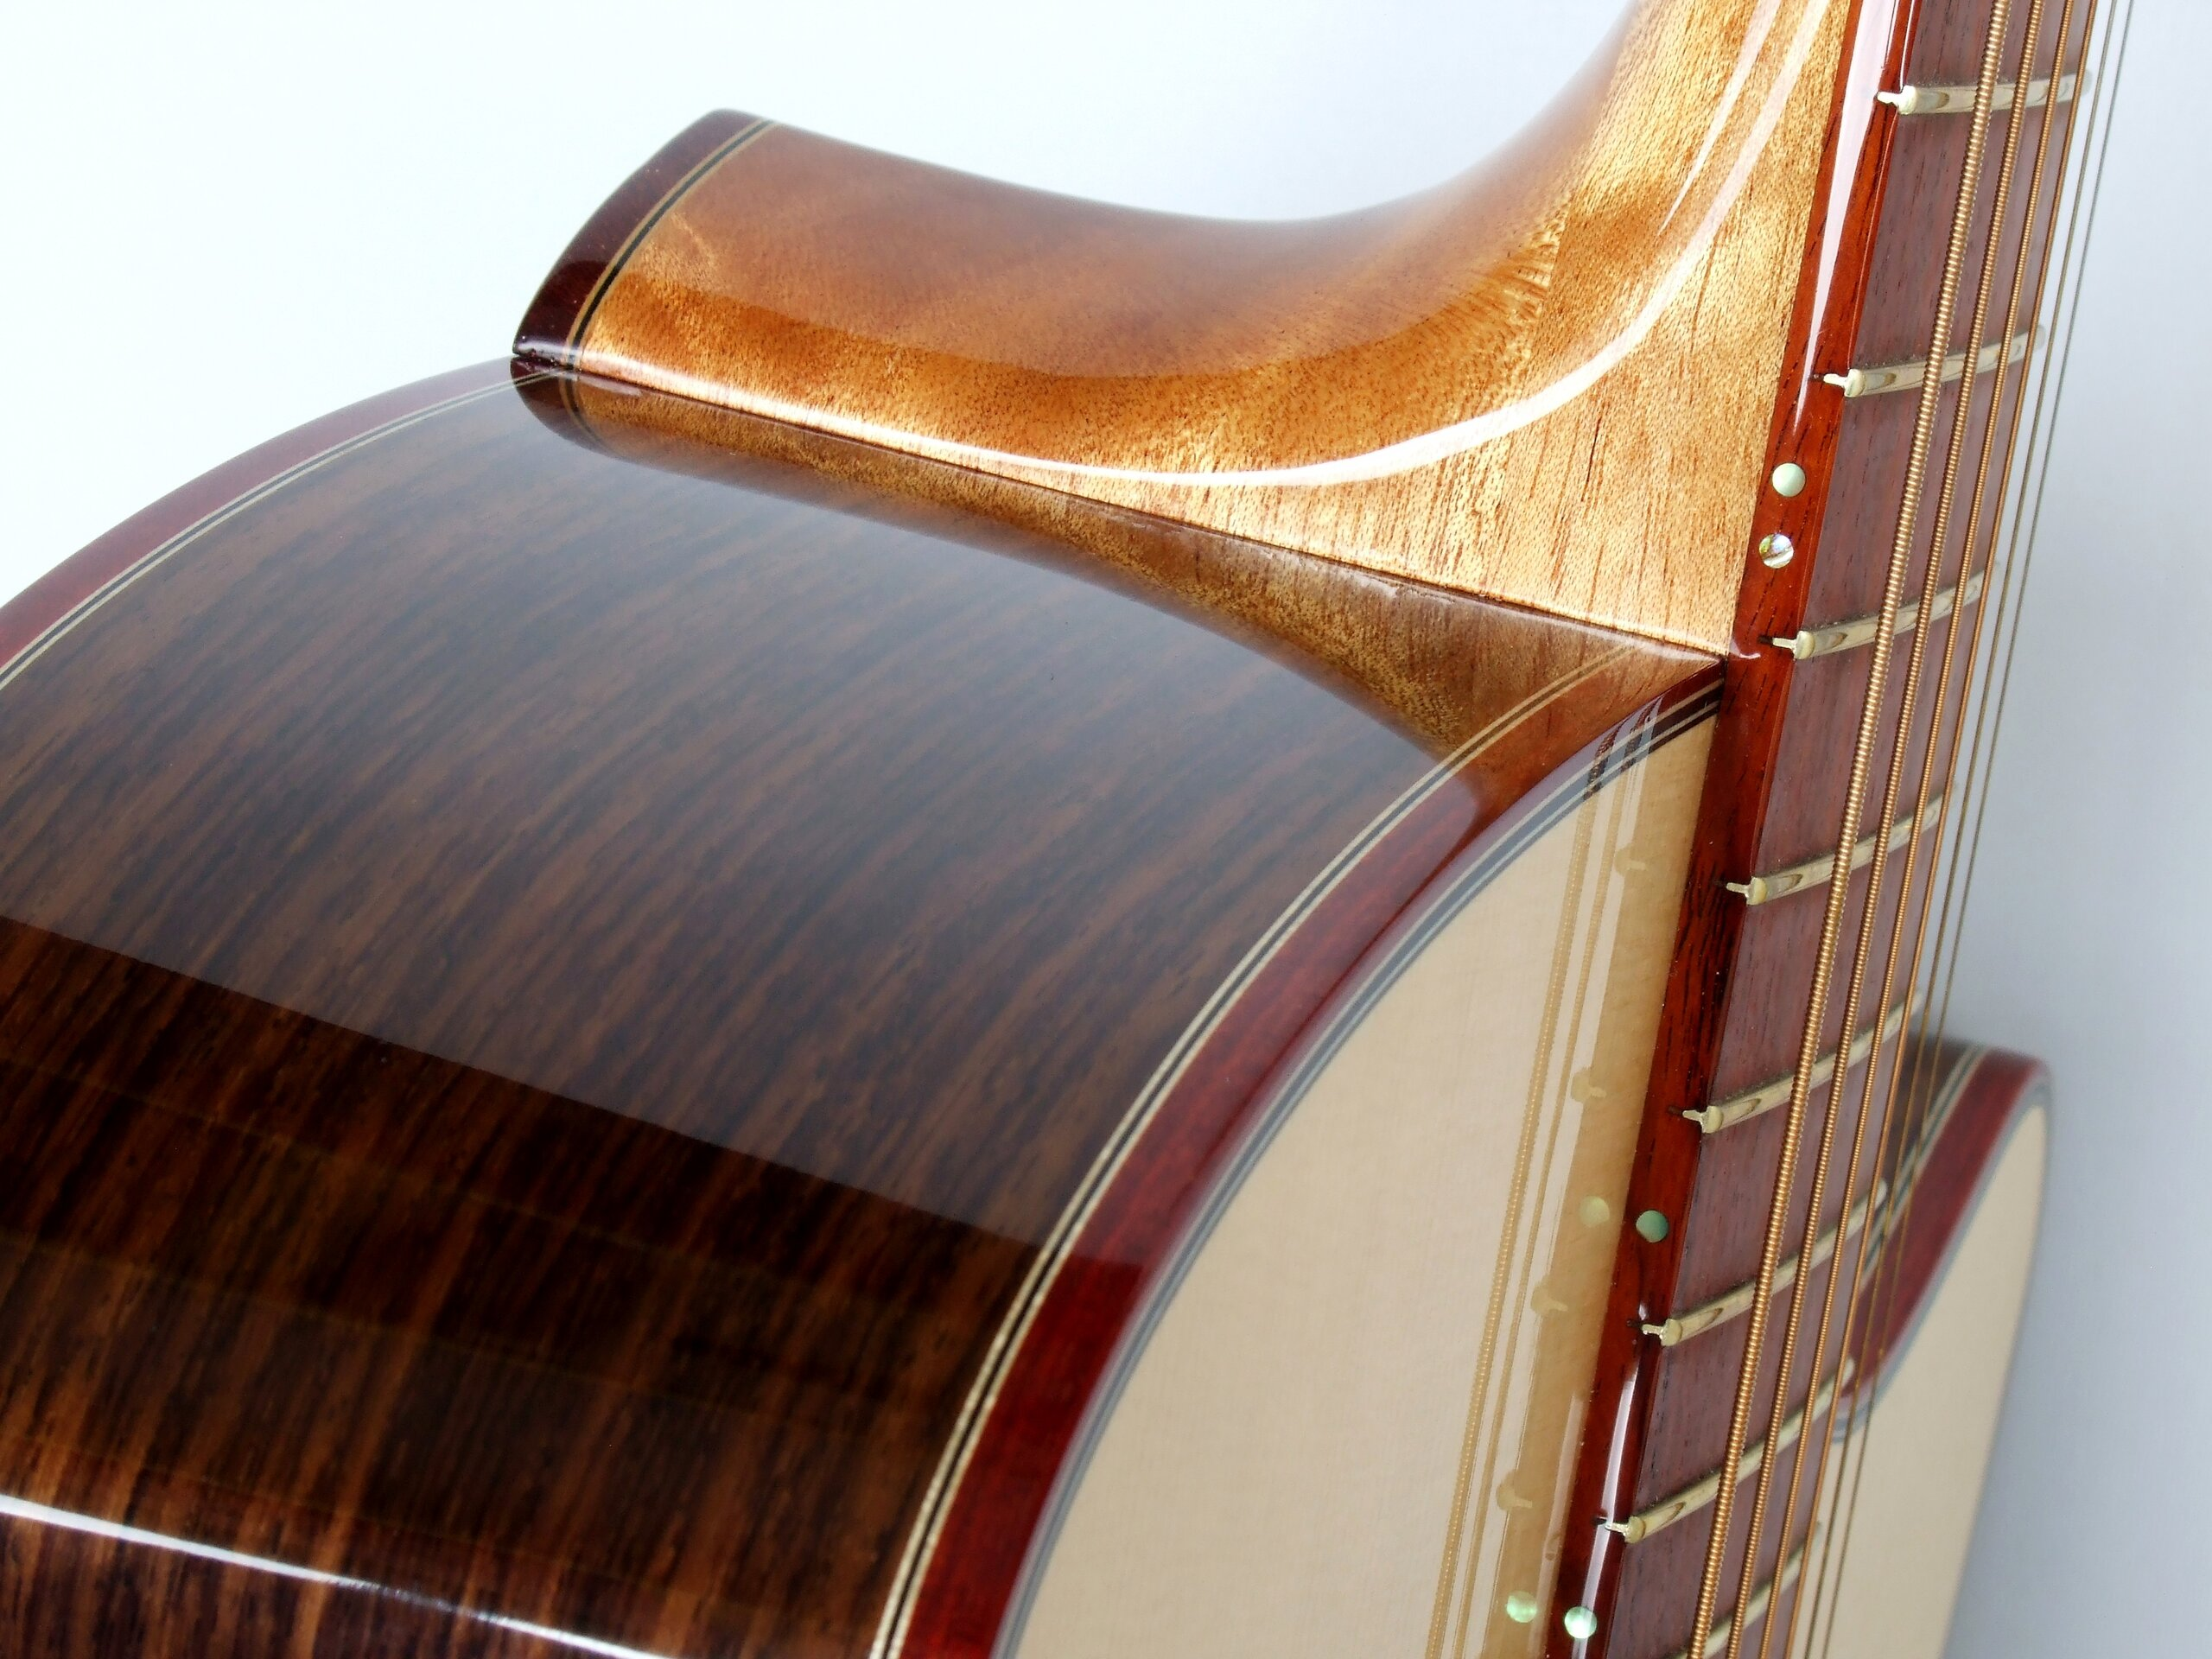 Detail of a neck joint on a steel string guitar